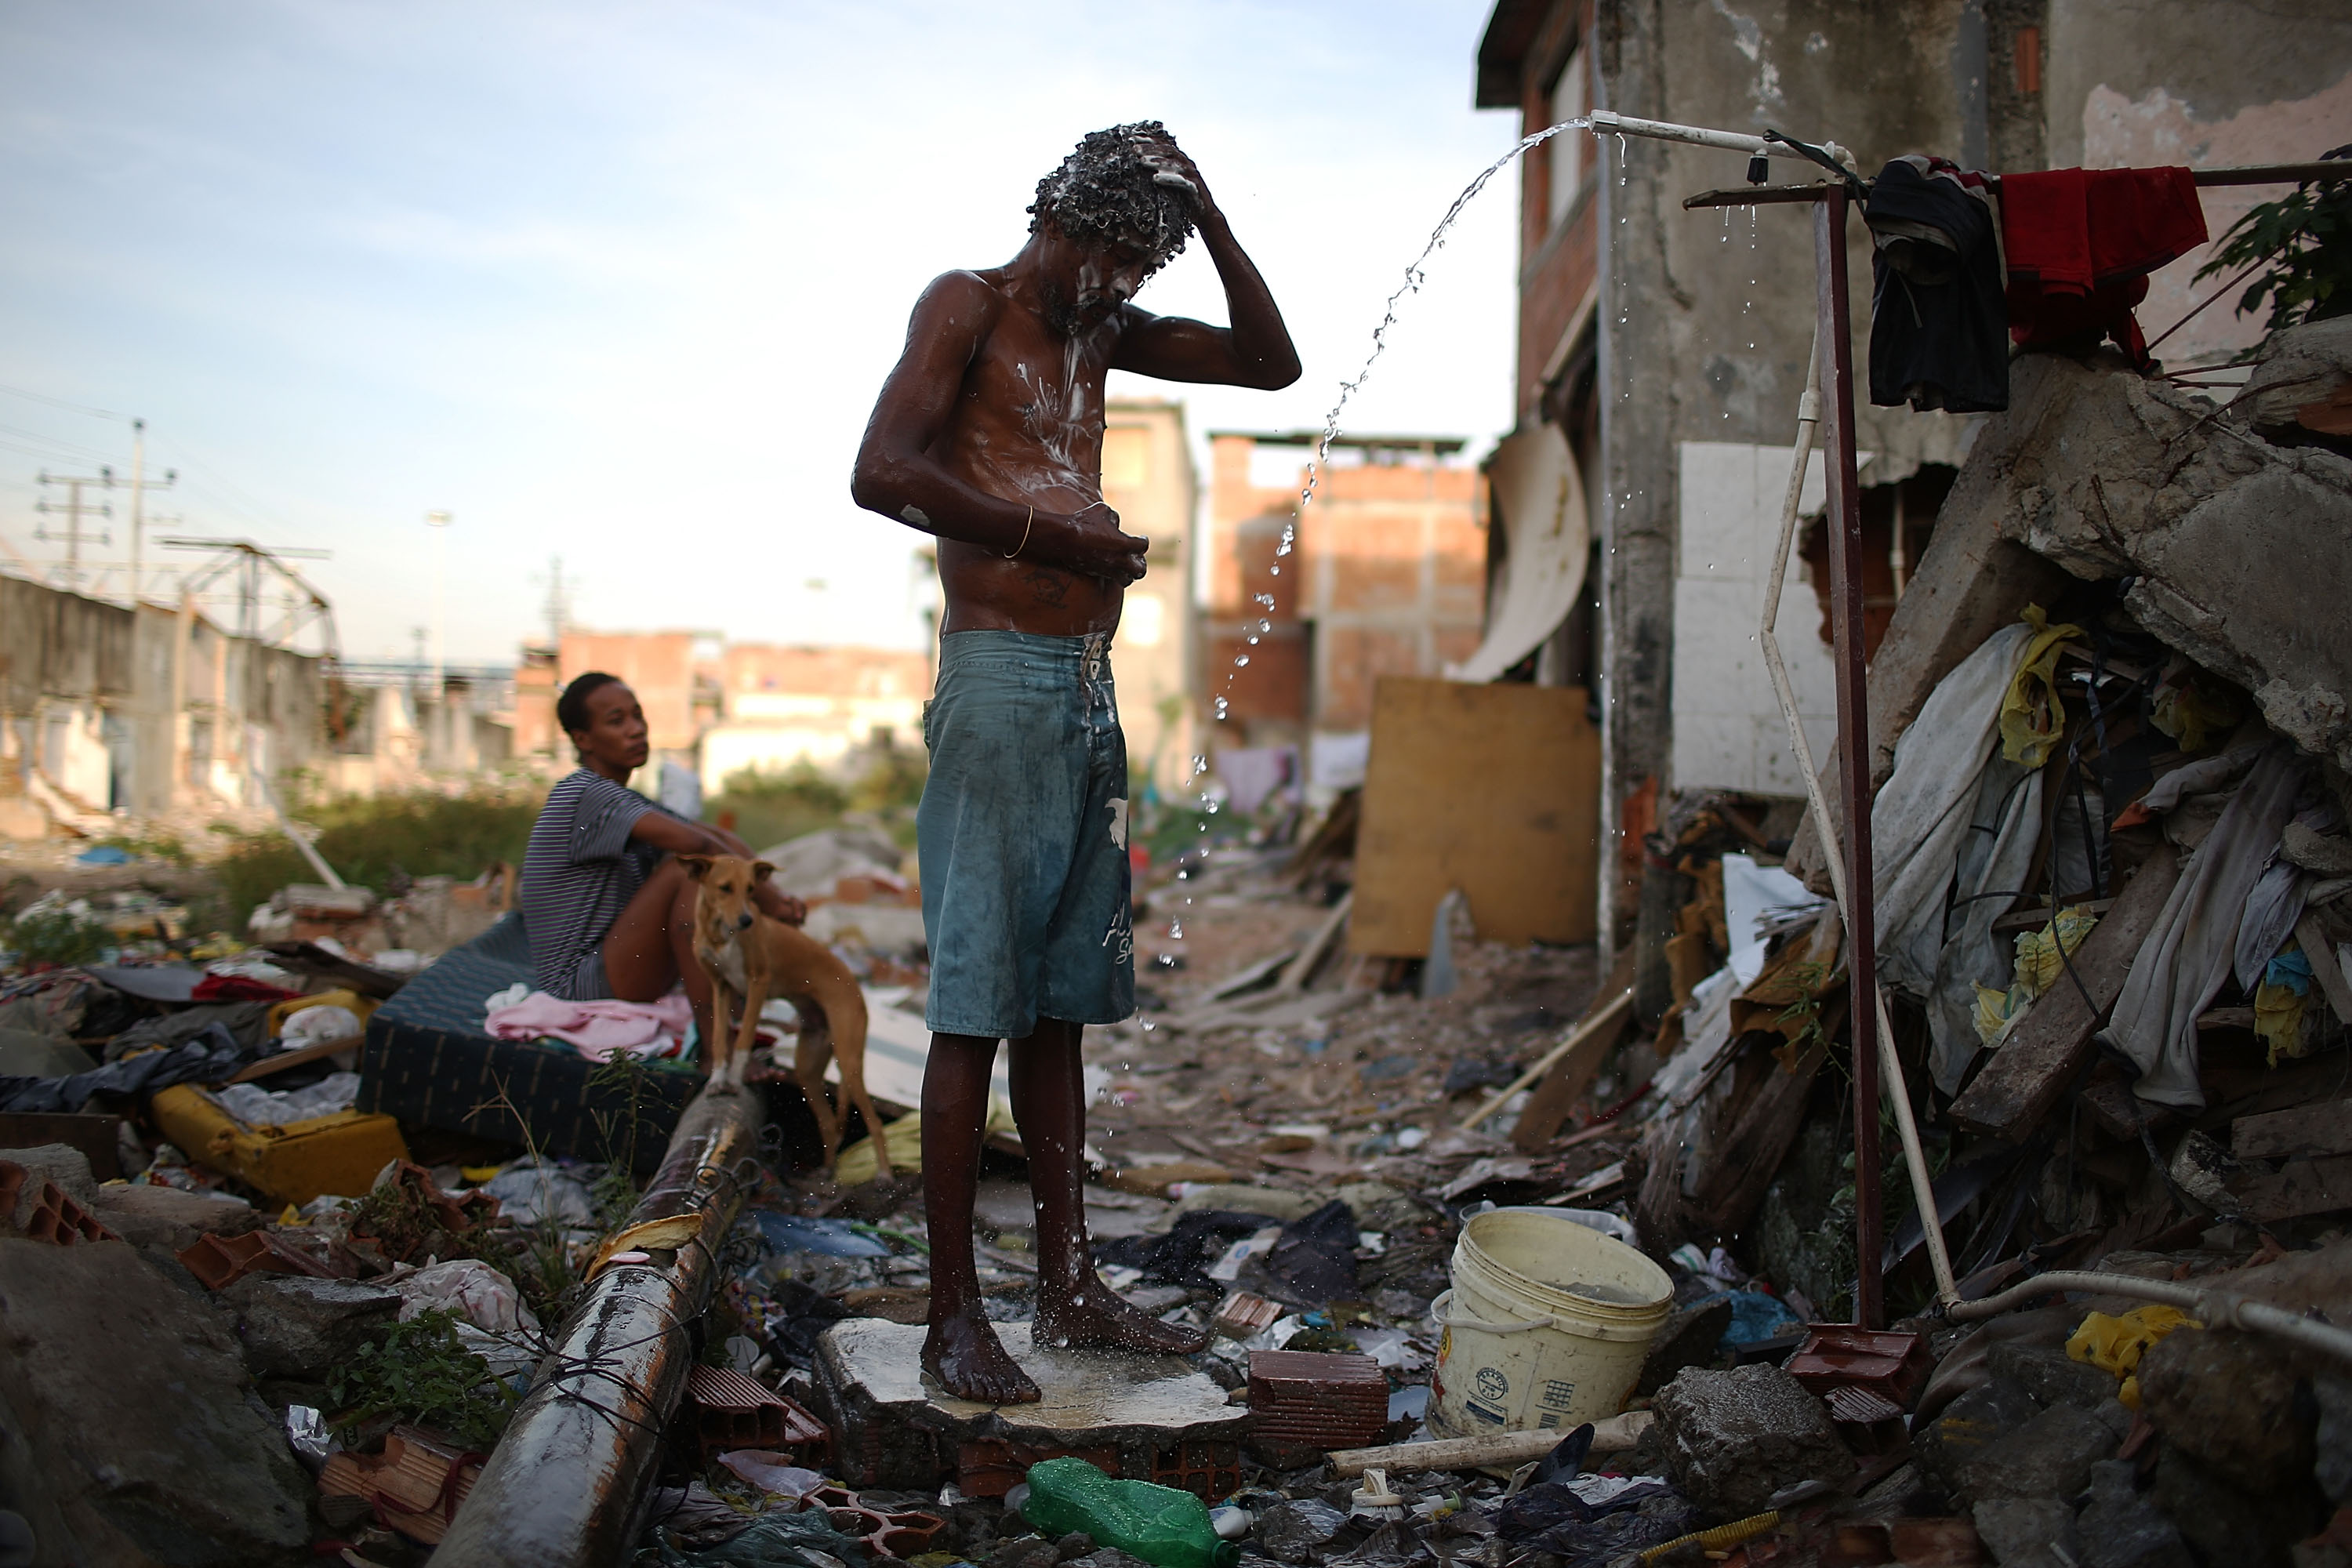 A man bathes from a small hose amongst the remains of demolished homes in the Metro Mangueira favela, located near Maracana stadium, on May 22, 2014 in Rio de Janeiro.